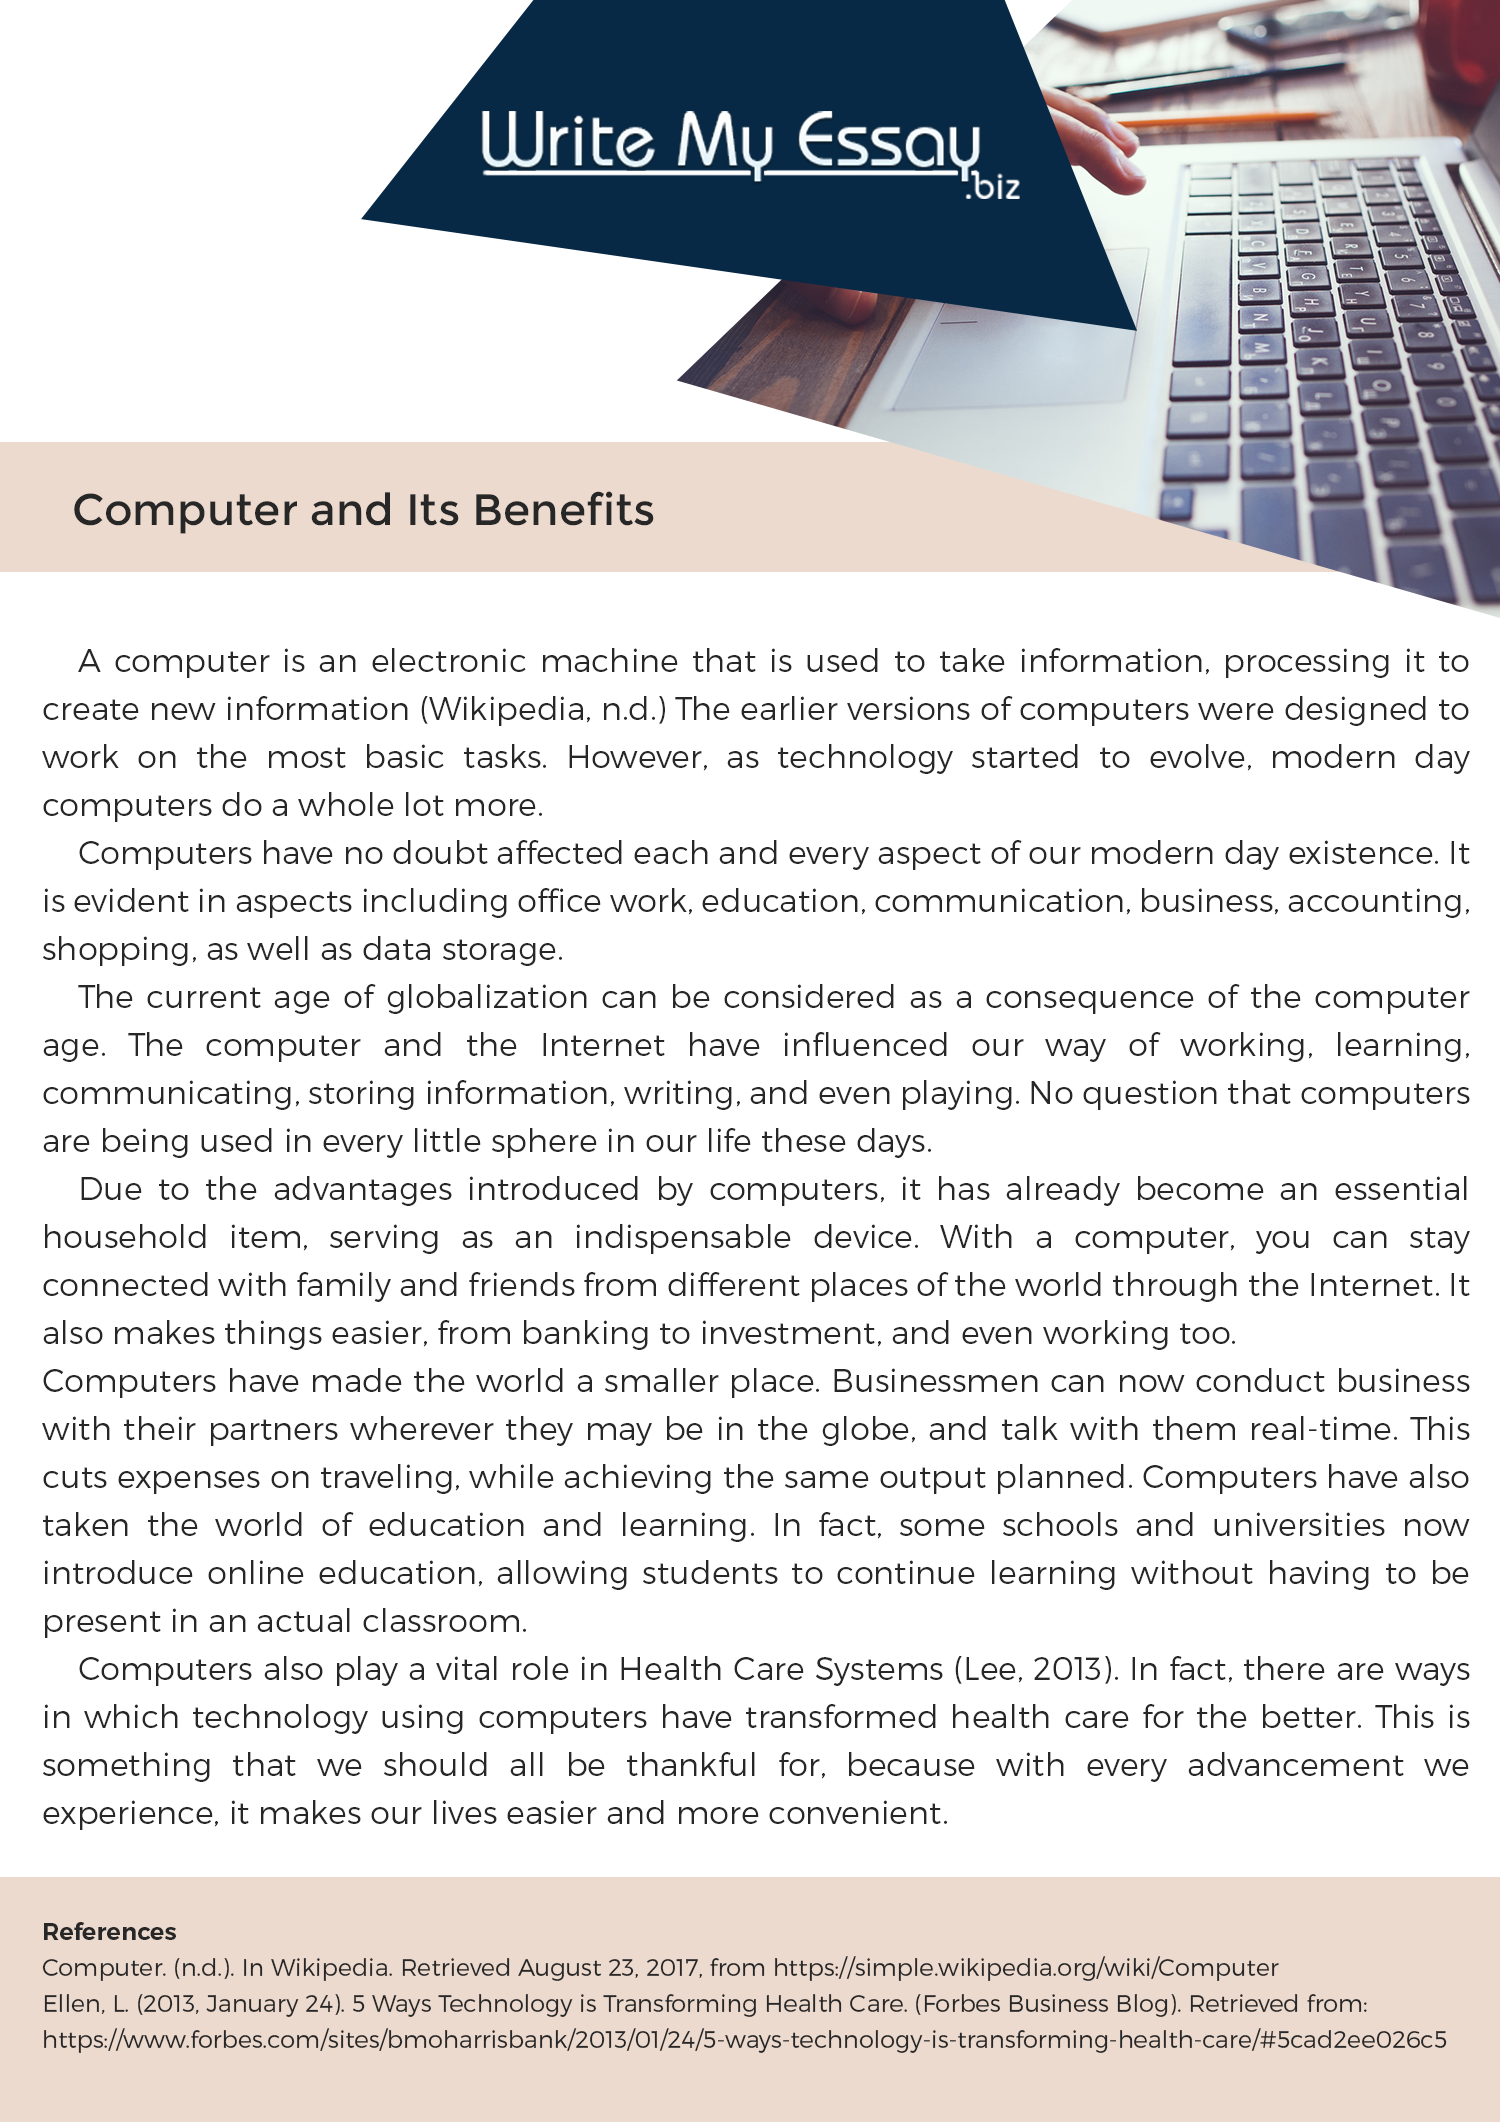 Need A Great Example Of Essay On Computer And It Benefit Check Thi One Out More Like Here Http Www Writemyessay Biz Comp Myself Writer Technology